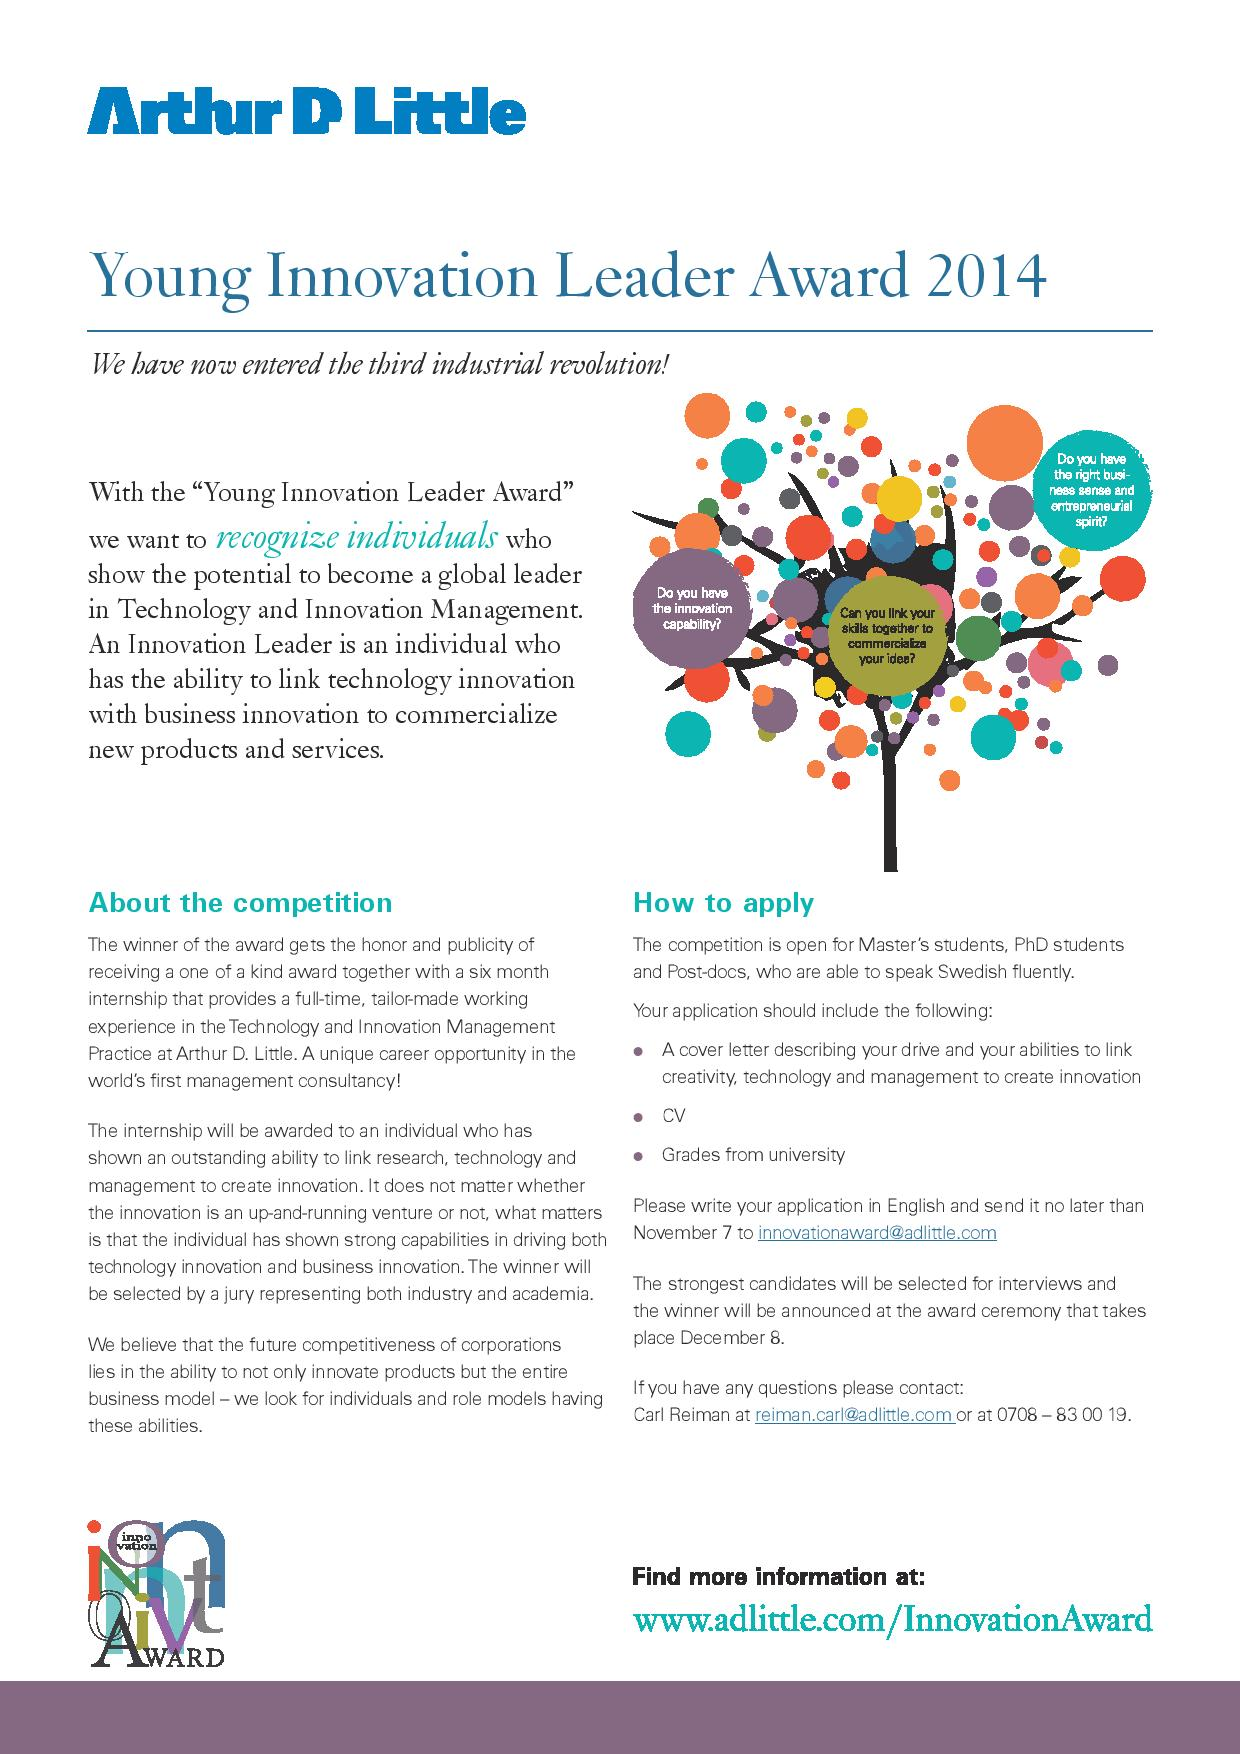 ADL_Innovation Award_2014-1-page-001